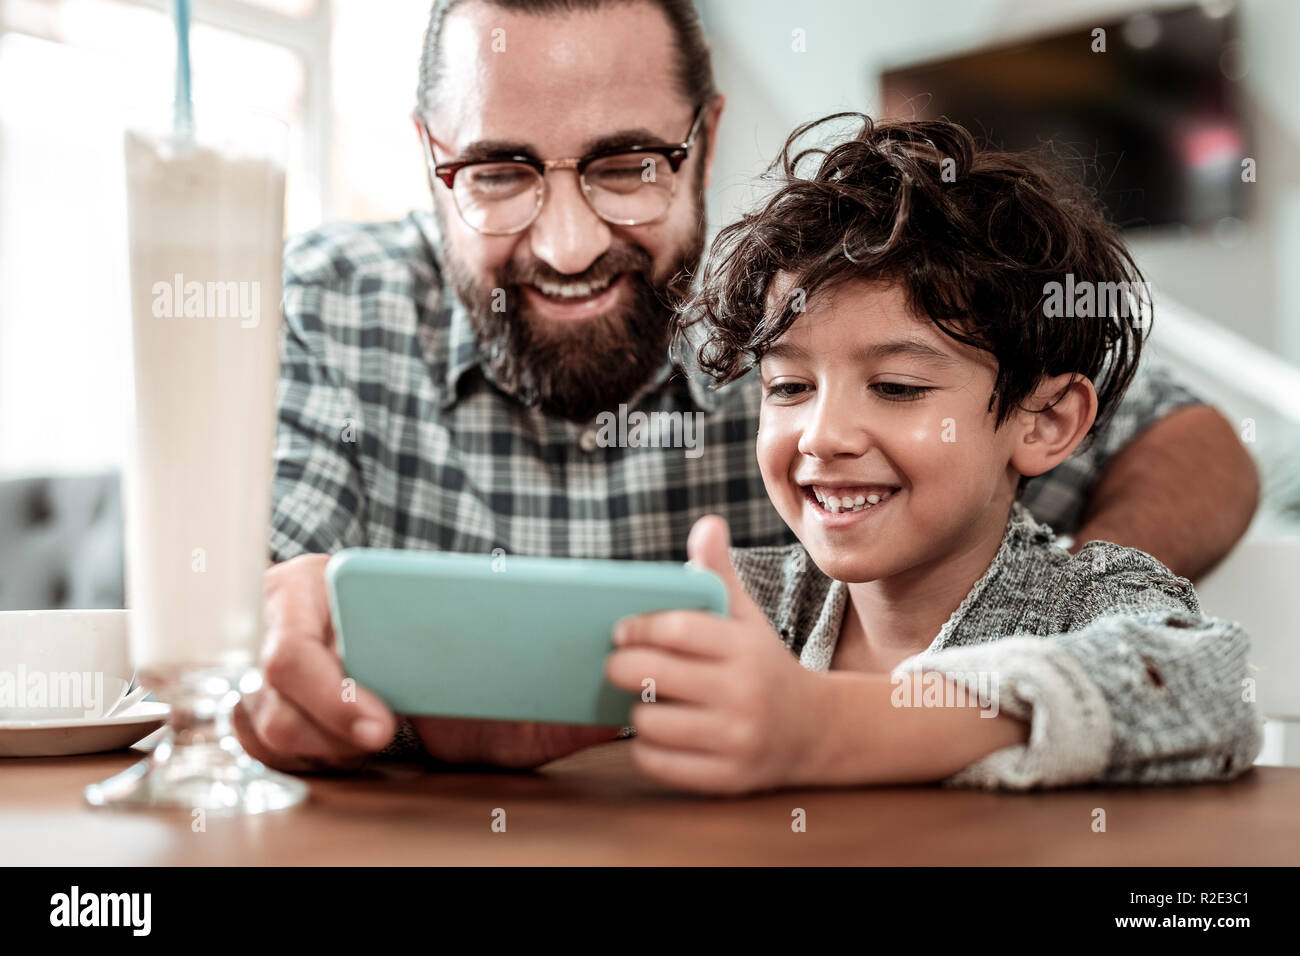 Cute smiling handsome son playing online games sitting near